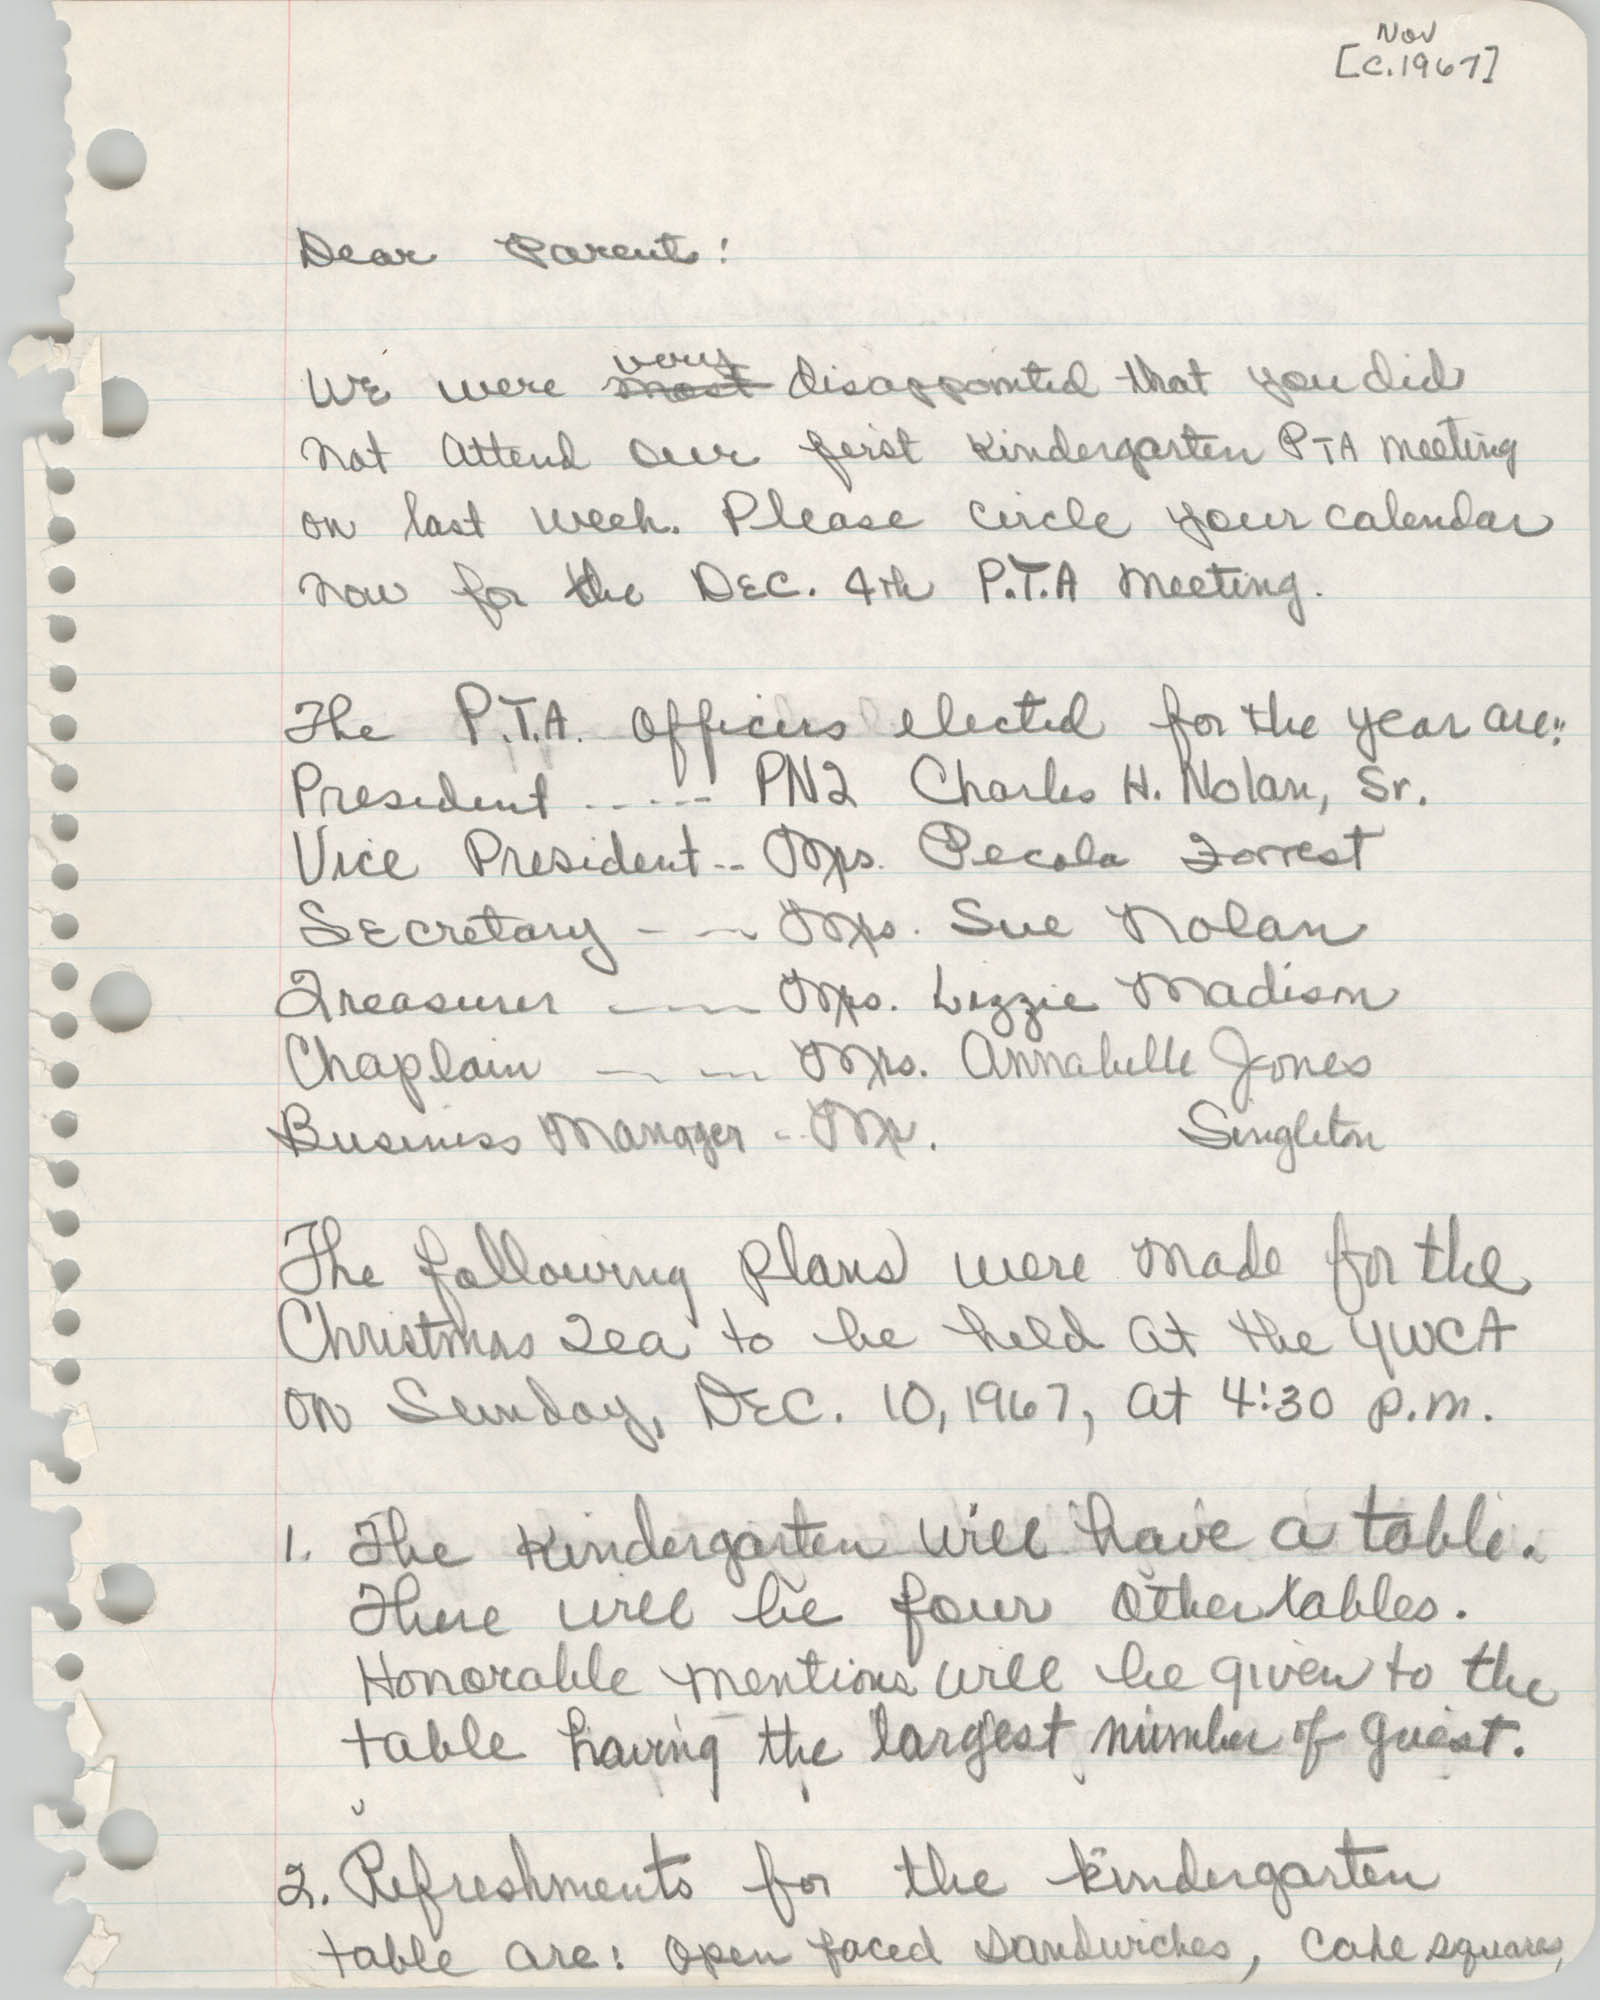 Letter from Charles H. Nolan to Parents, November 1967